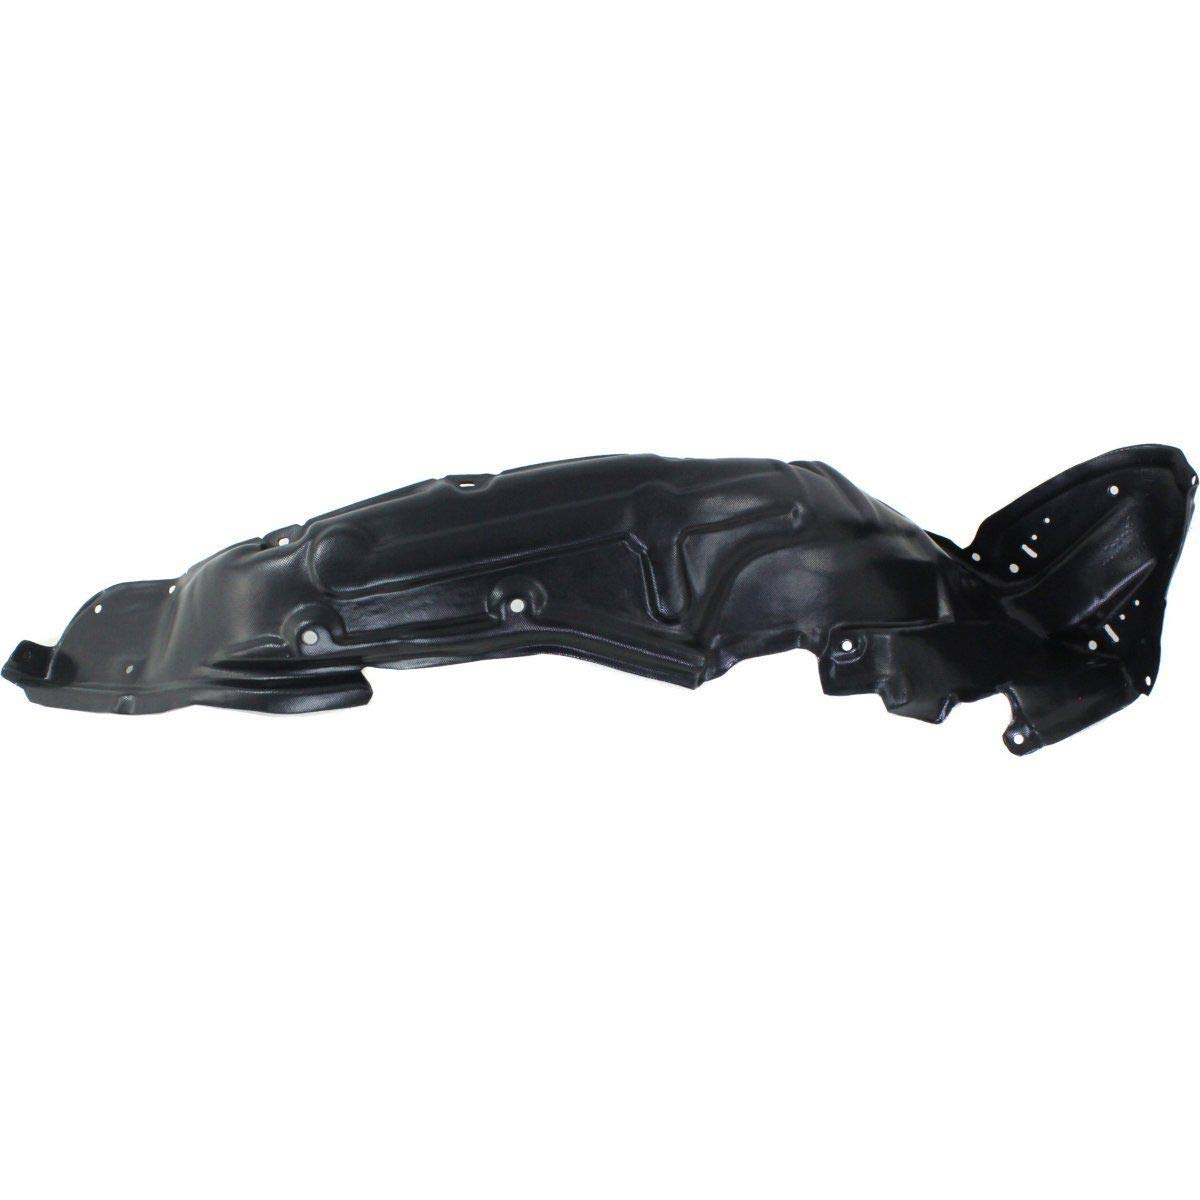 New Front Left Driver Side Fender Liner For 2000-2005 Toyota MR2 Spyder TO1250117 5380617020